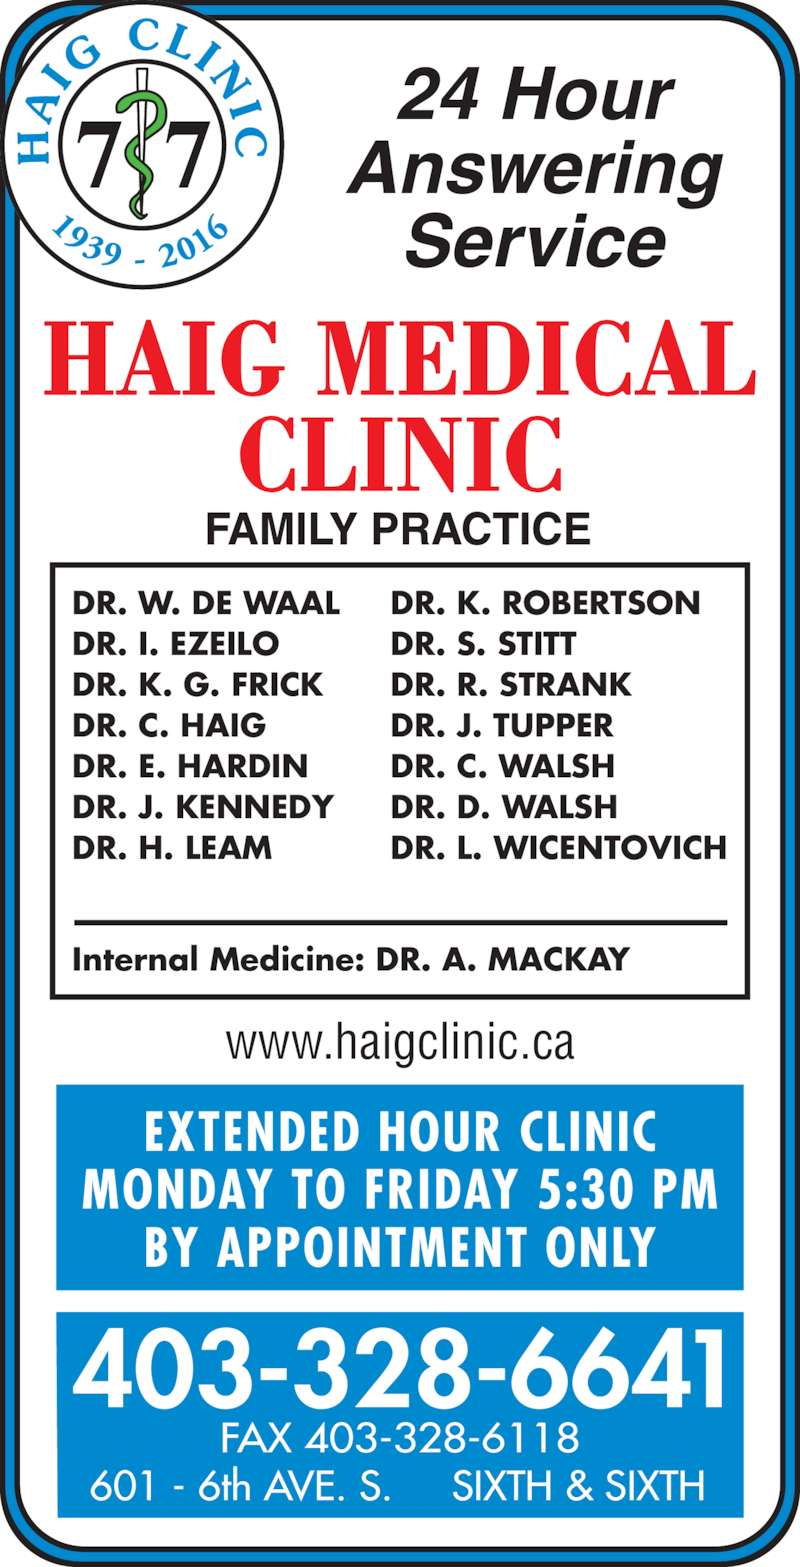 Chinook Primary Care Network (403-328-6641) - Display Ad - EXTENDED HOUR CLINIC MONDAY TO FRIDAY 5:30 PM BY APPOINTMENT ONLY www.haigclinic.ca 403-328-6641 FAX 403-328-6118 601 - 6th AVE. S.     SIXTH & SIXTH 24 Hour Answering Service DR. W. DE WAAL DR. I. EZEILO DR. K. G. FRICK DR. C. HAIG DR. E. HARDIN DR. J. KENNEDY DR. H. LEAM Internal Medicine: DR. A. MACKAY DR. K. ROBERTSON DR. S. STITT DR. R. STRANK DR. J. TUPPER DR. C. WALSH DR. D. WALSH DR. L. WICENTOVICH 7 7 1939 -  201 IG  CLIN I C